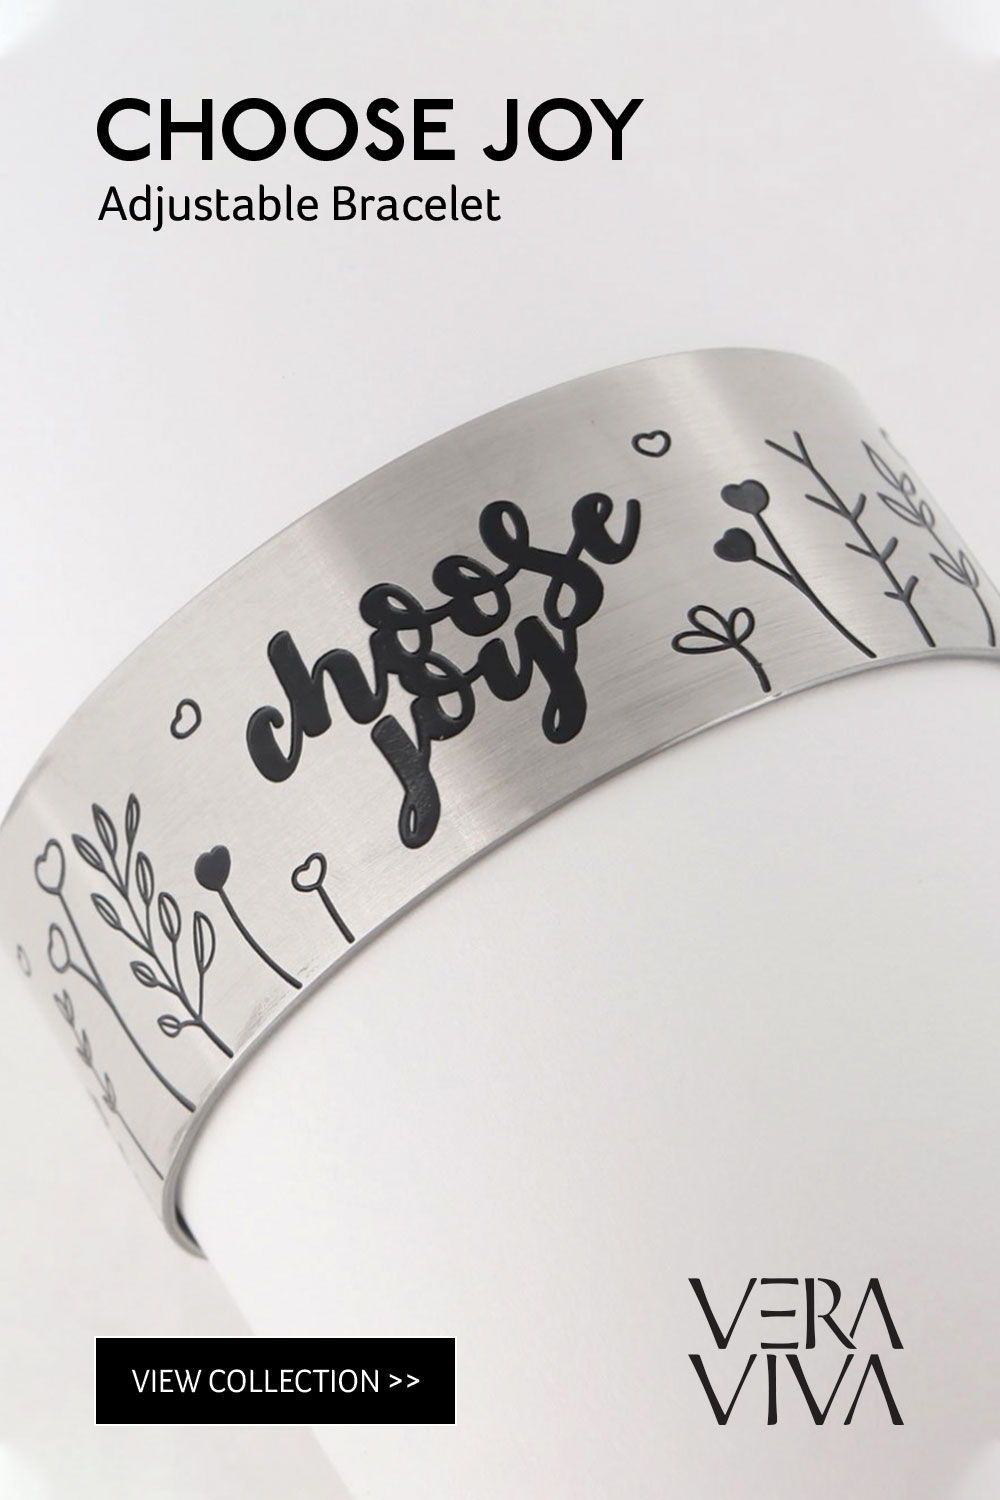 STARAMZ Inspirational Gifts Bracelet Cuff Bangle Mantra Quote Positive Saying Engraved Stainless Steel Motivational Friendship Encouragement Jewelry for Teen Girls Women Men